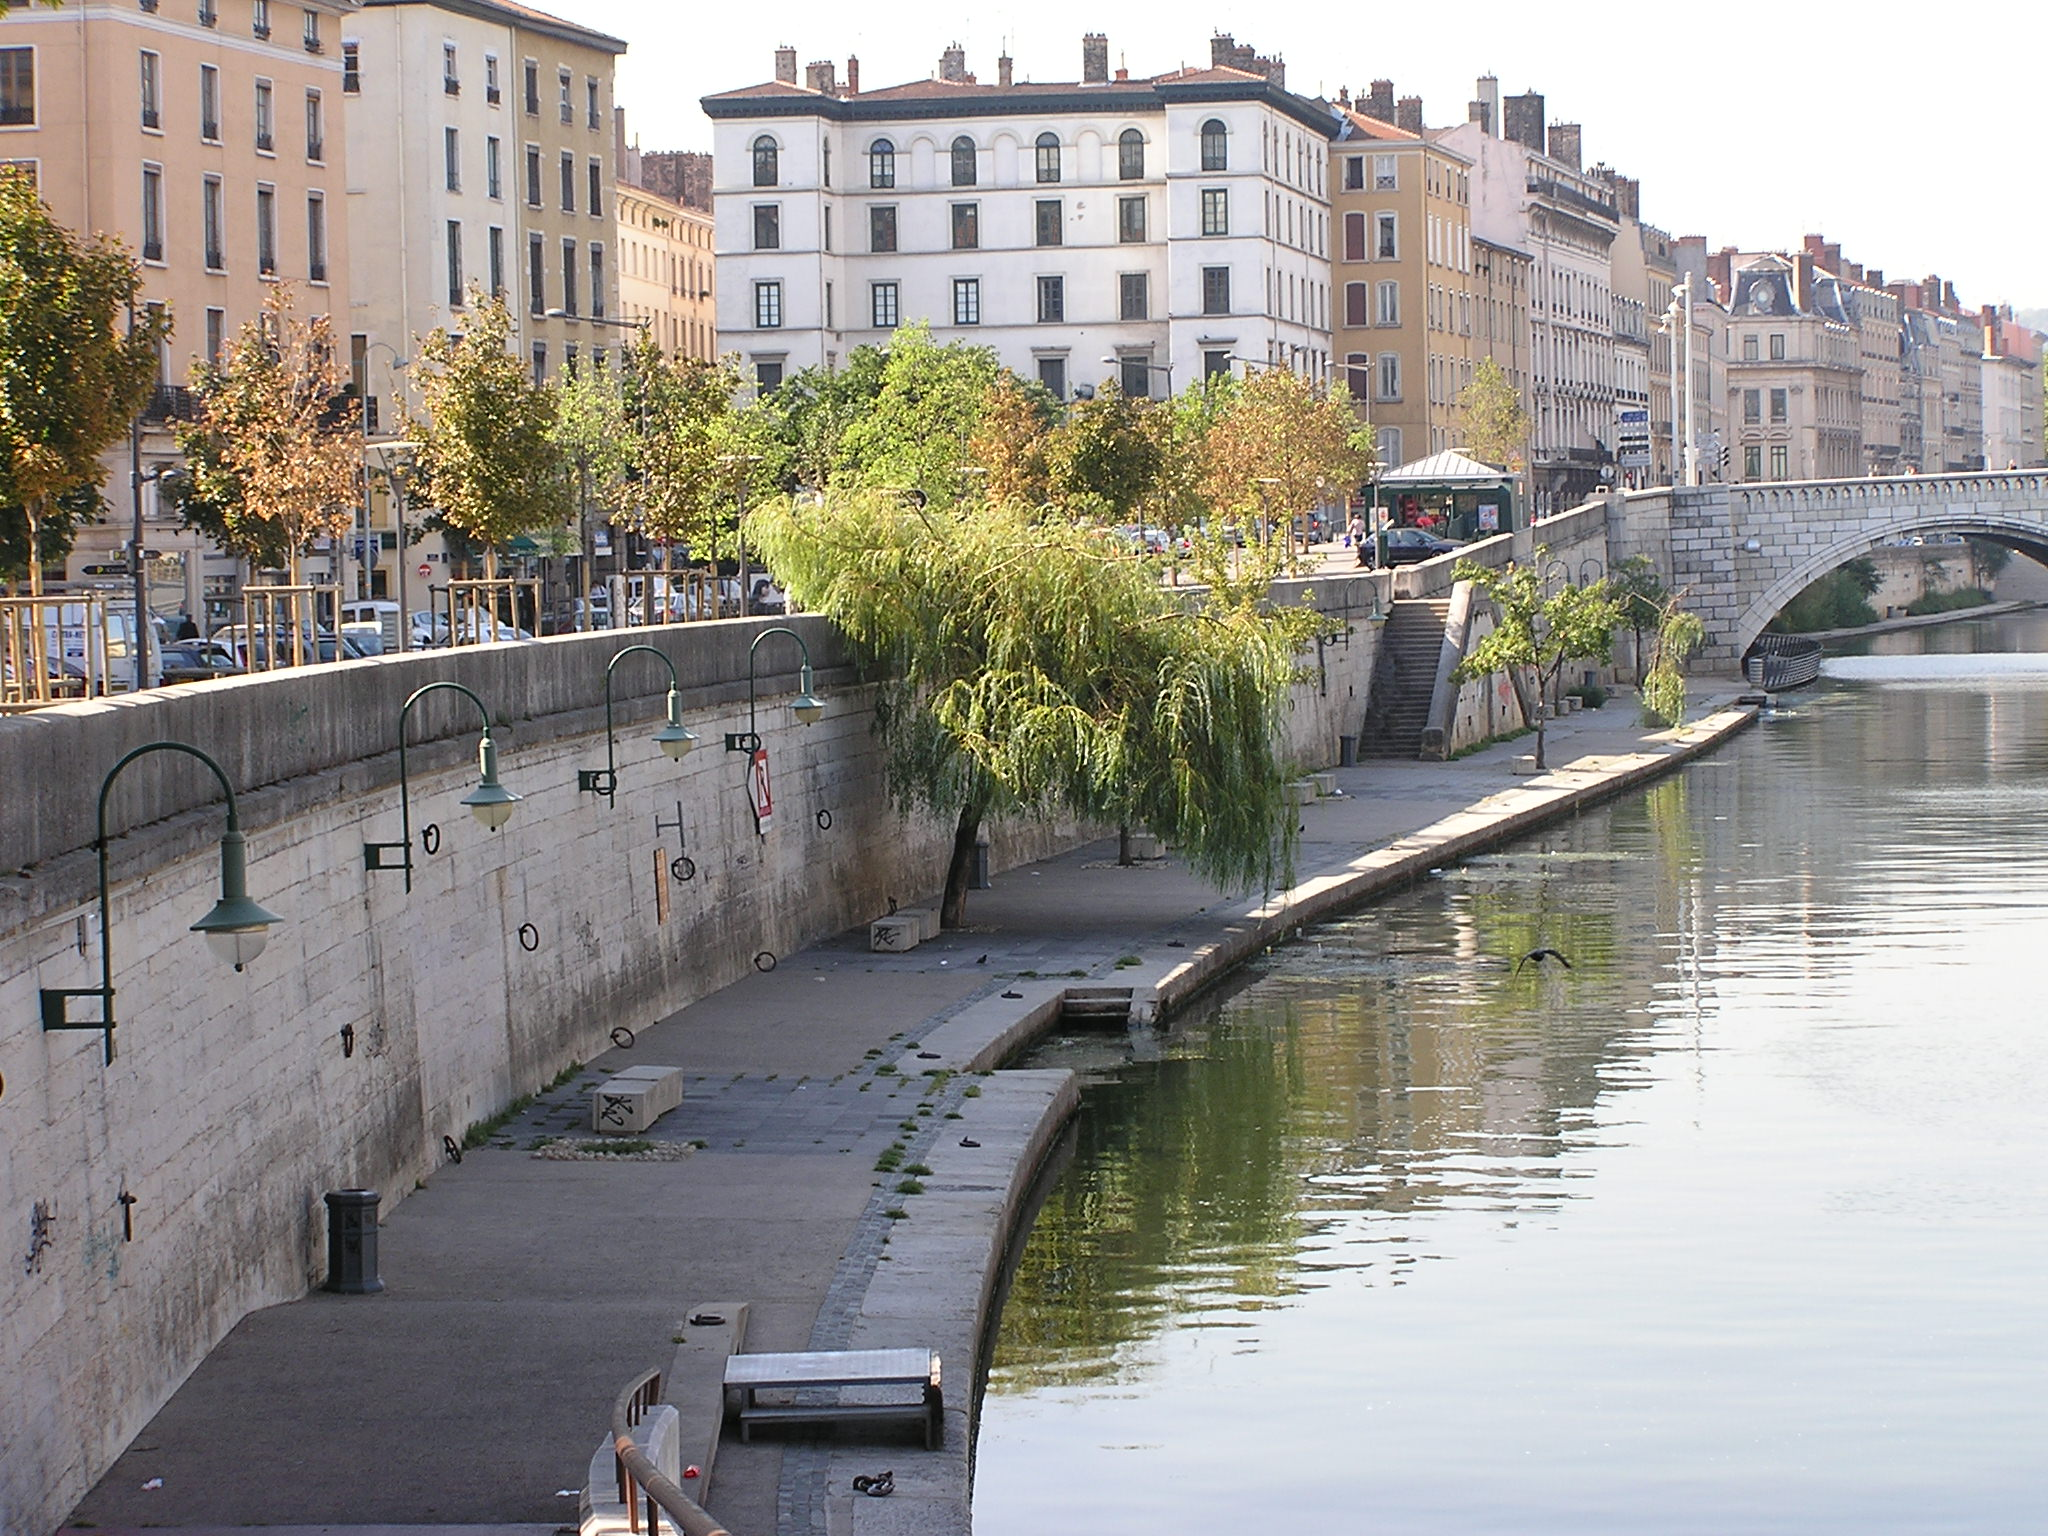 on the quai Tnl 58' on the quai : sat april 21 @ 1045am - splash - special outdoor tnl 58' rate: 10e cash only (bring your own yoga mat + water) or 15e with mat + water.